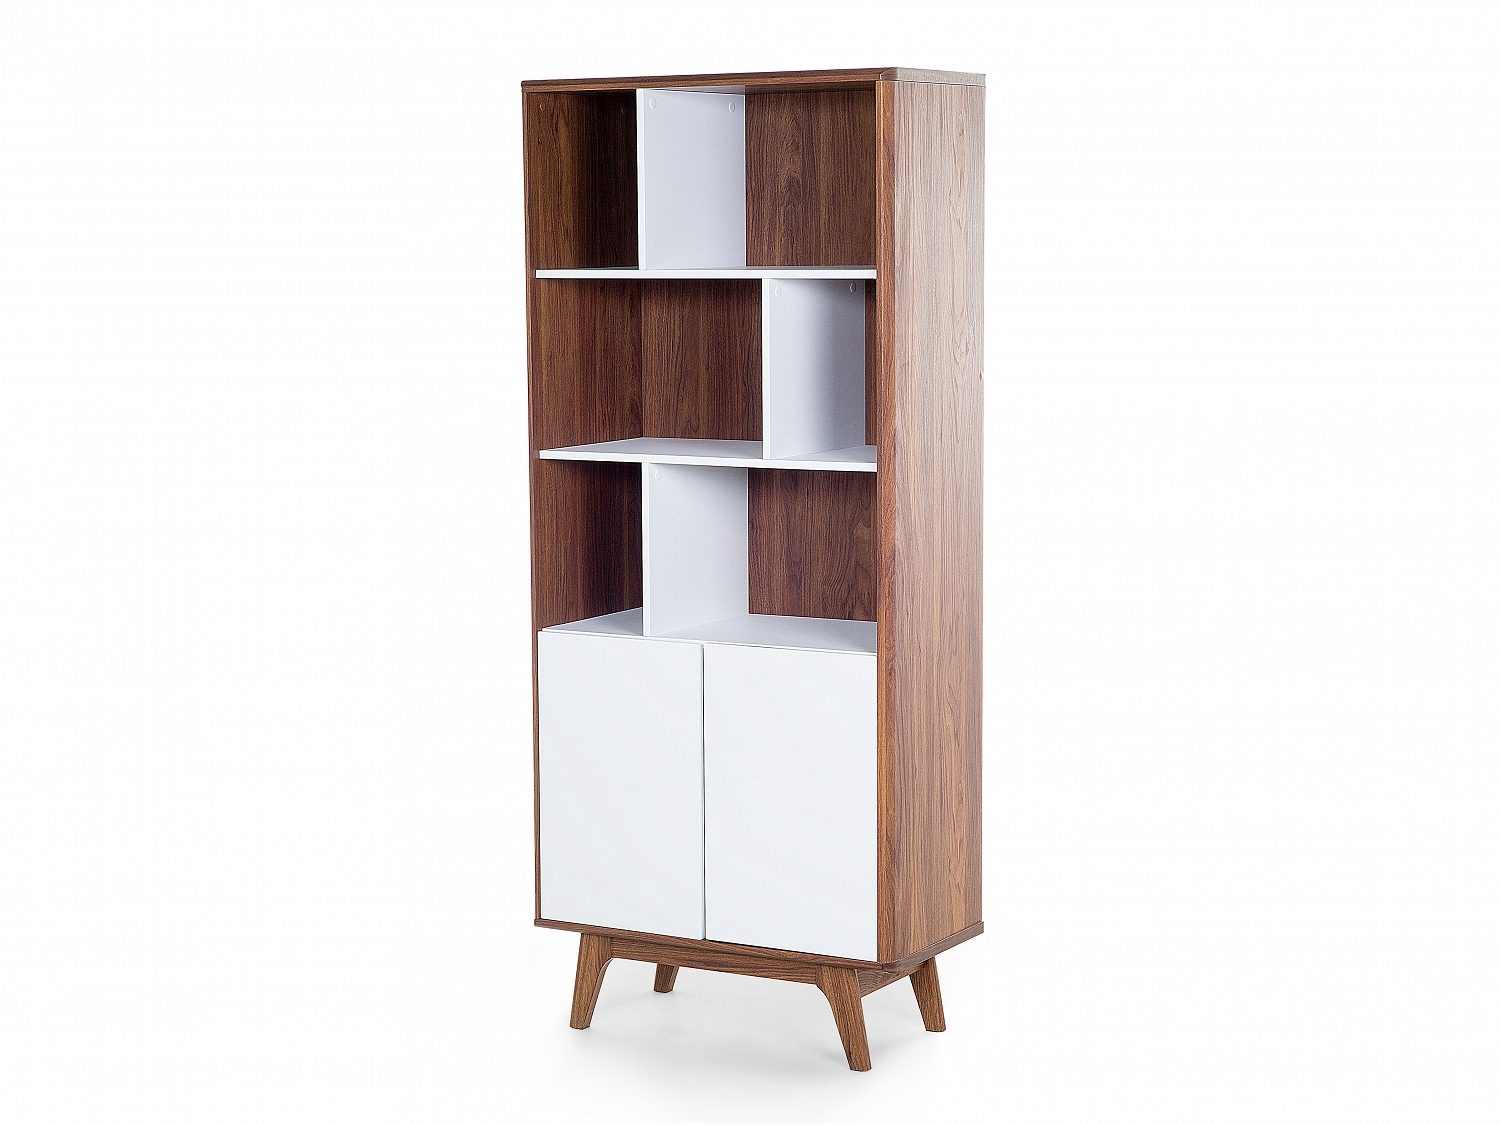 Wonderful image of Bookcase White Tall Wood Varnish 6 shelves 2 cabinets eBay with #8F5C3C color and 1500x1125 pixels